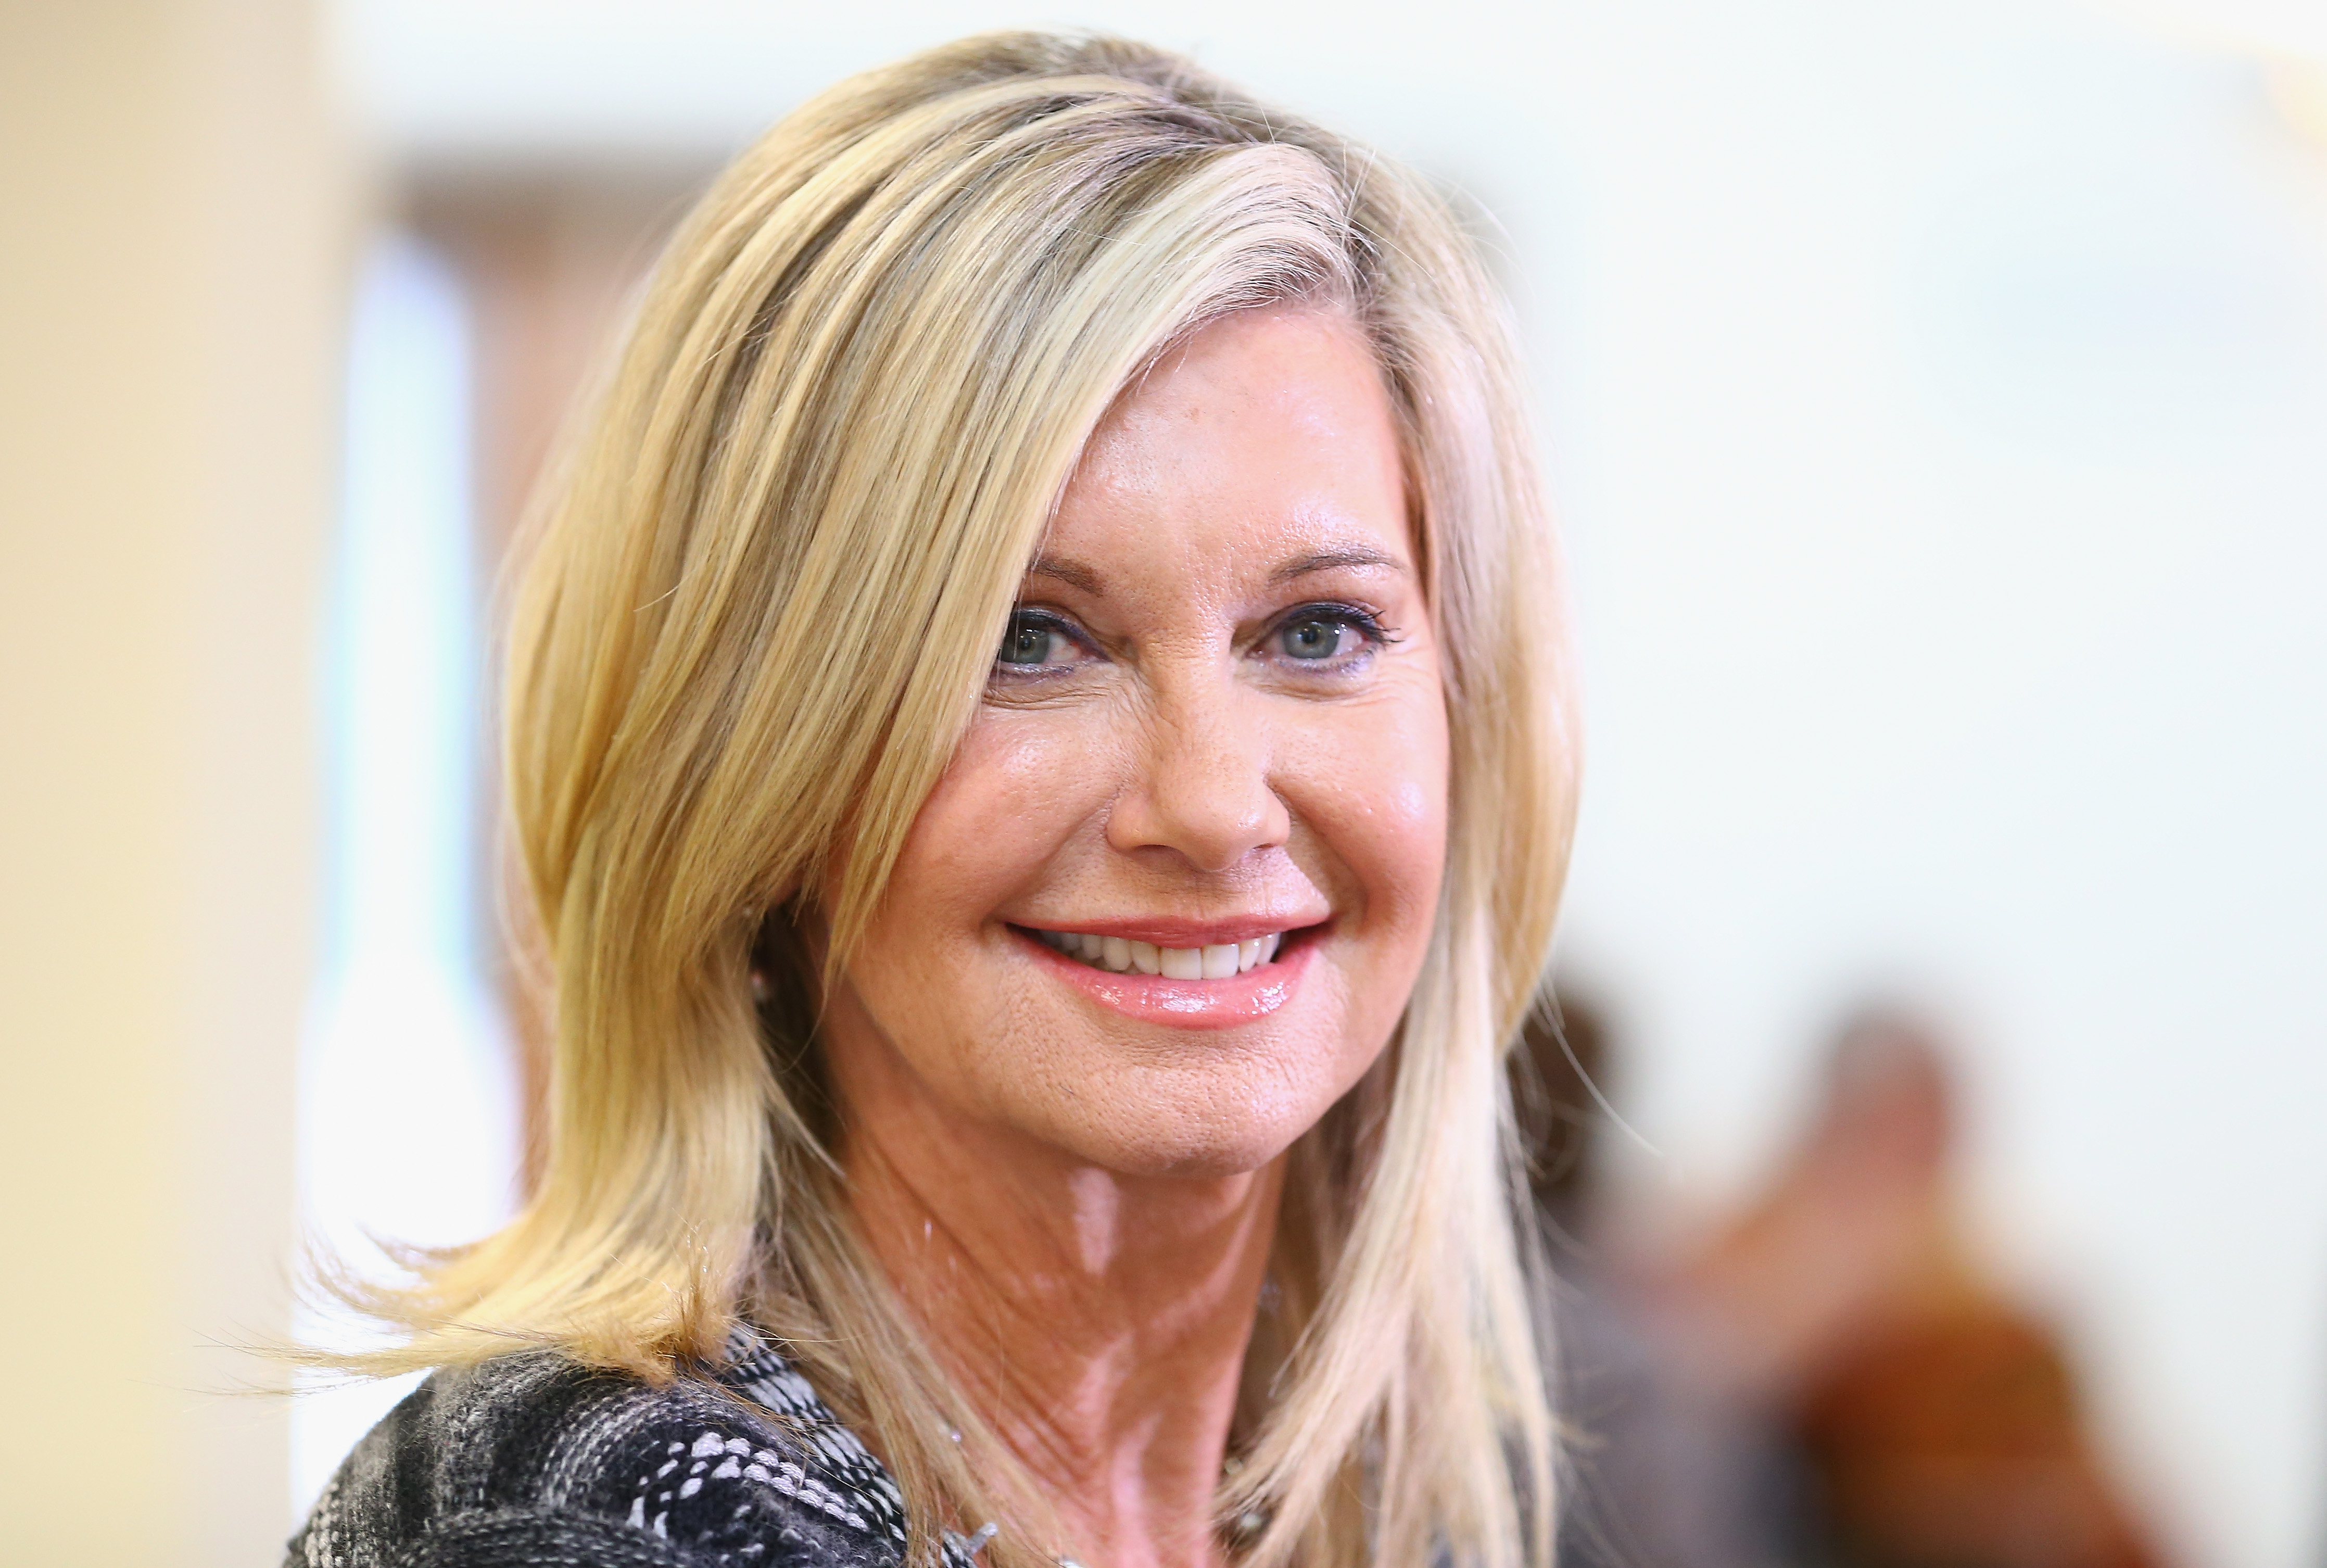 Olivia Newton John Reveals She Has Been Diagnosed With Cancer GettyImages 181201121